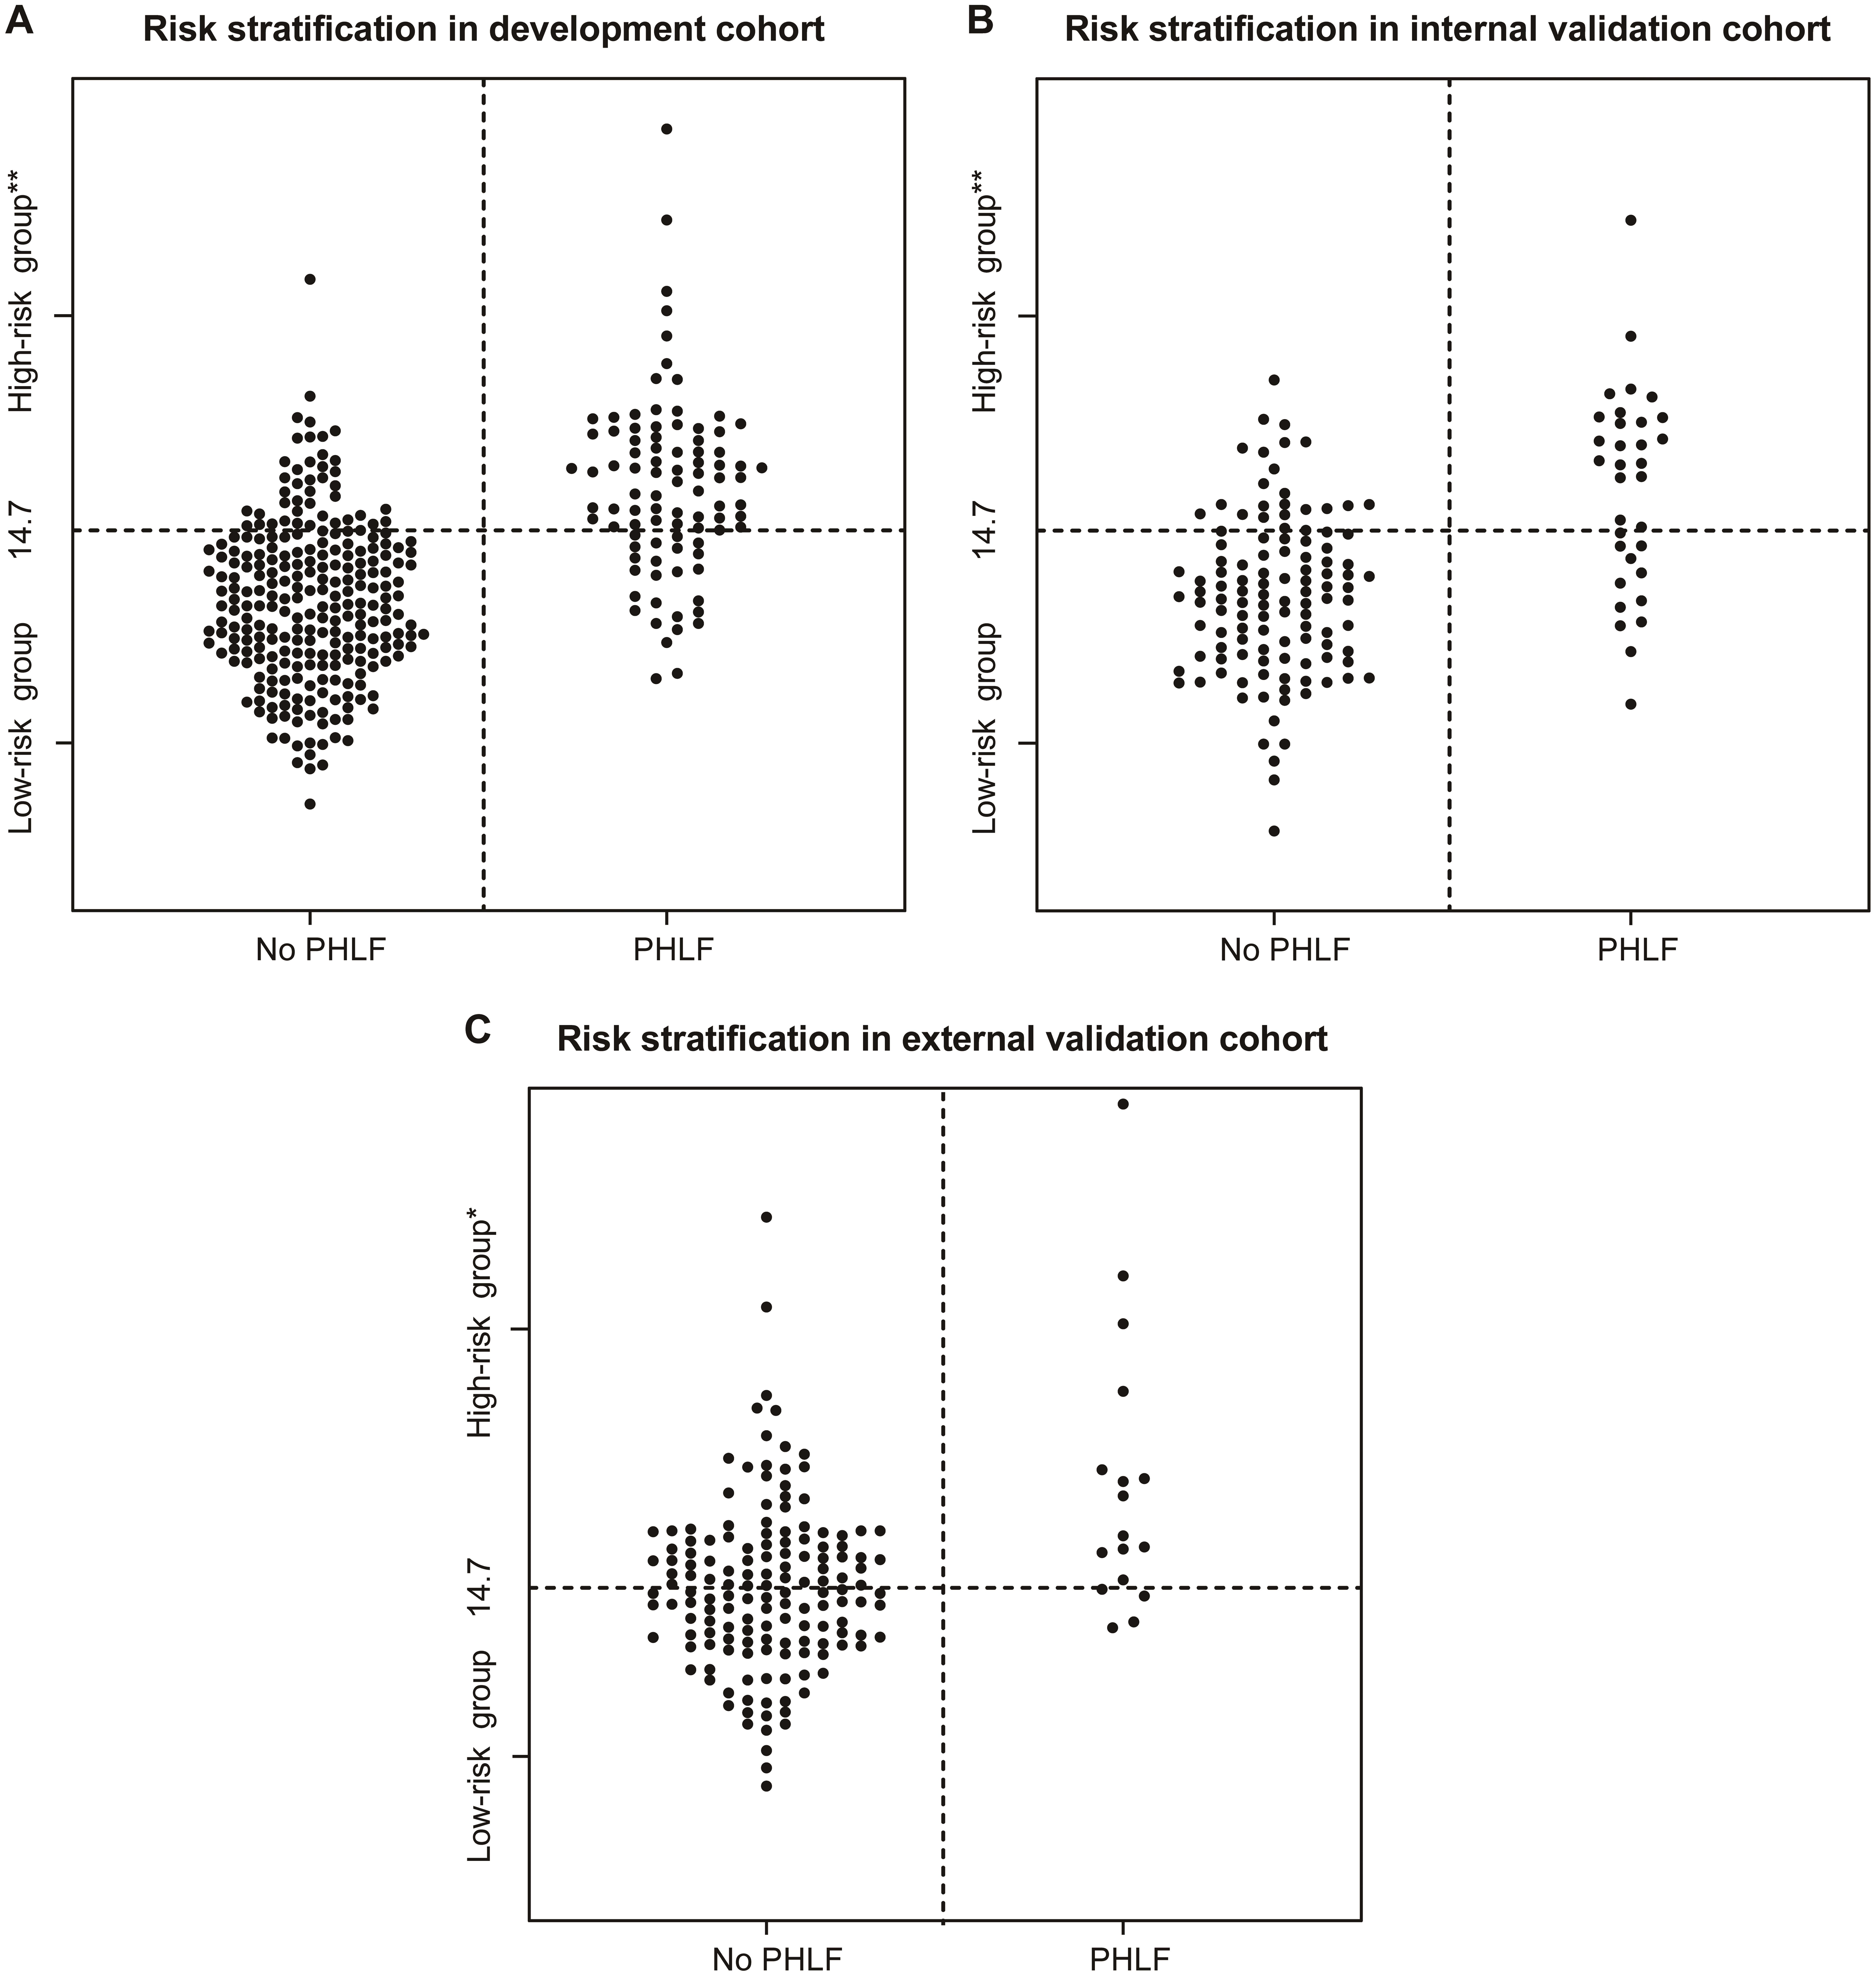 Relationship between the value of the PHLF score and occurrence of PHLF in (A) development cohort, (B) internal validation cohort and (C) external validation cohort.